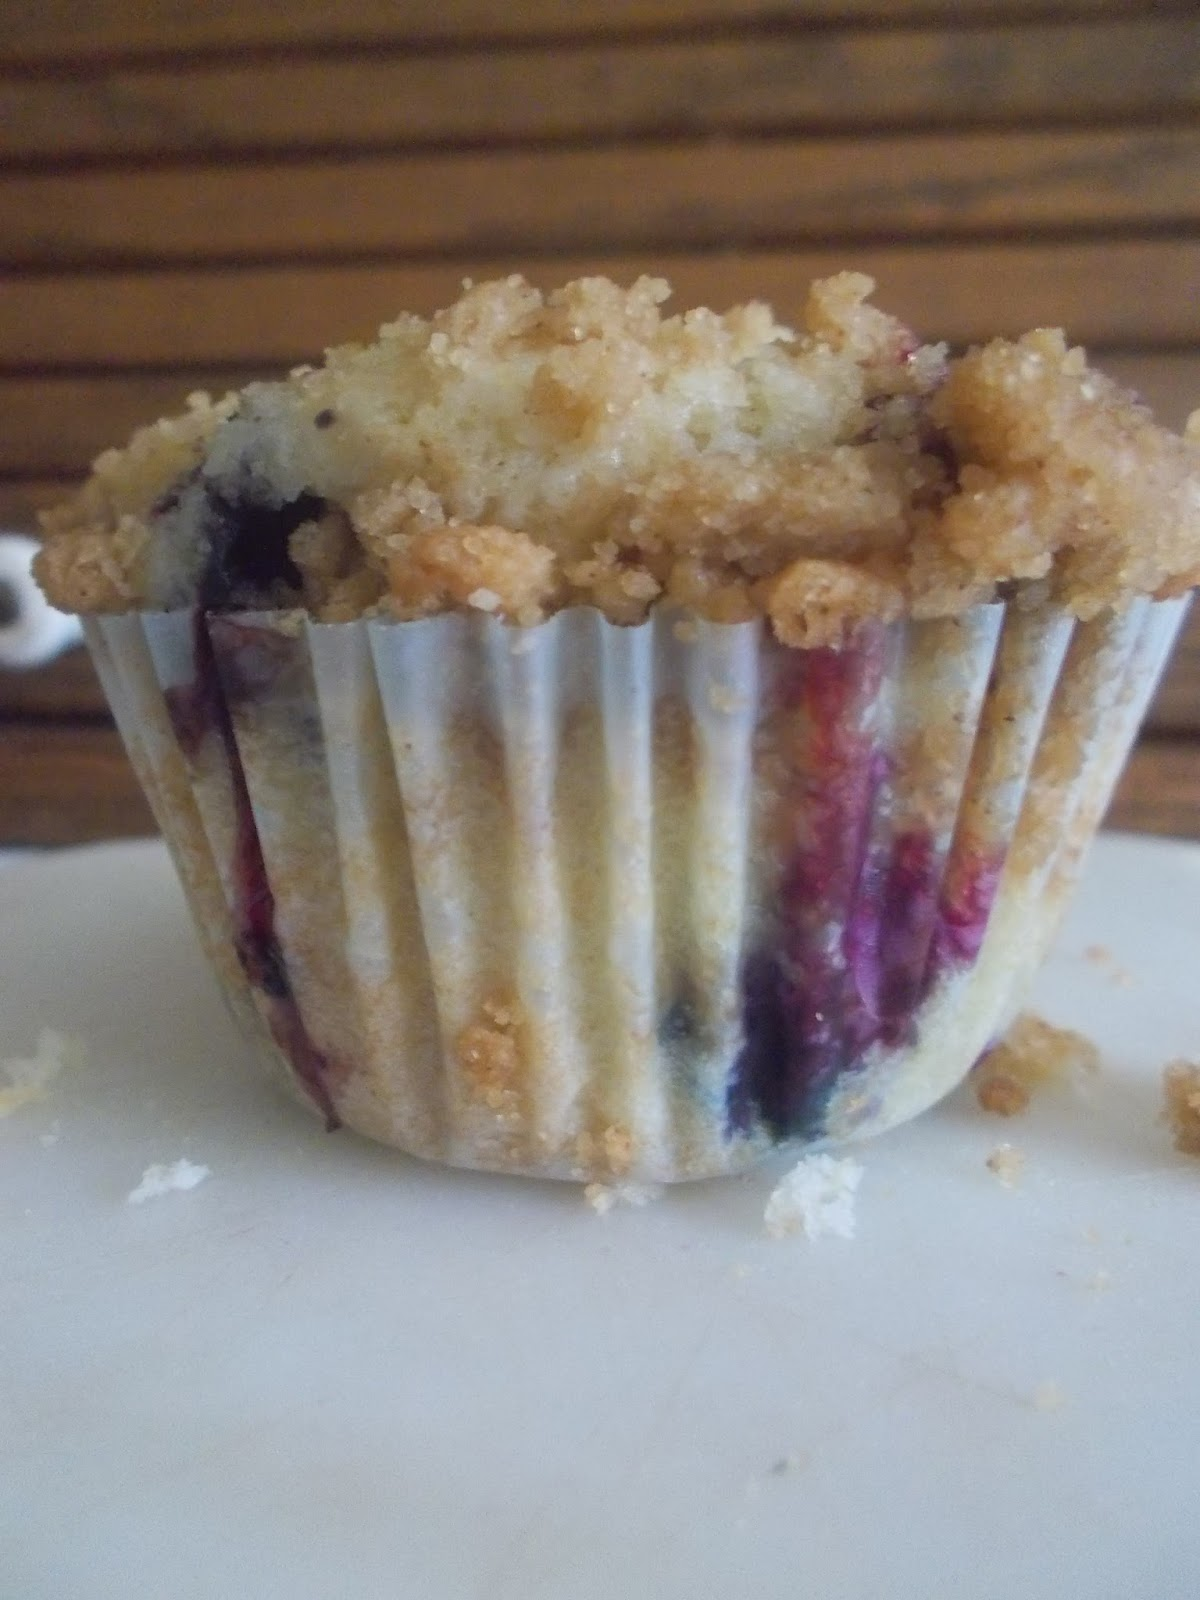 Rose's Supposes: To Die For Blueberry Muffins